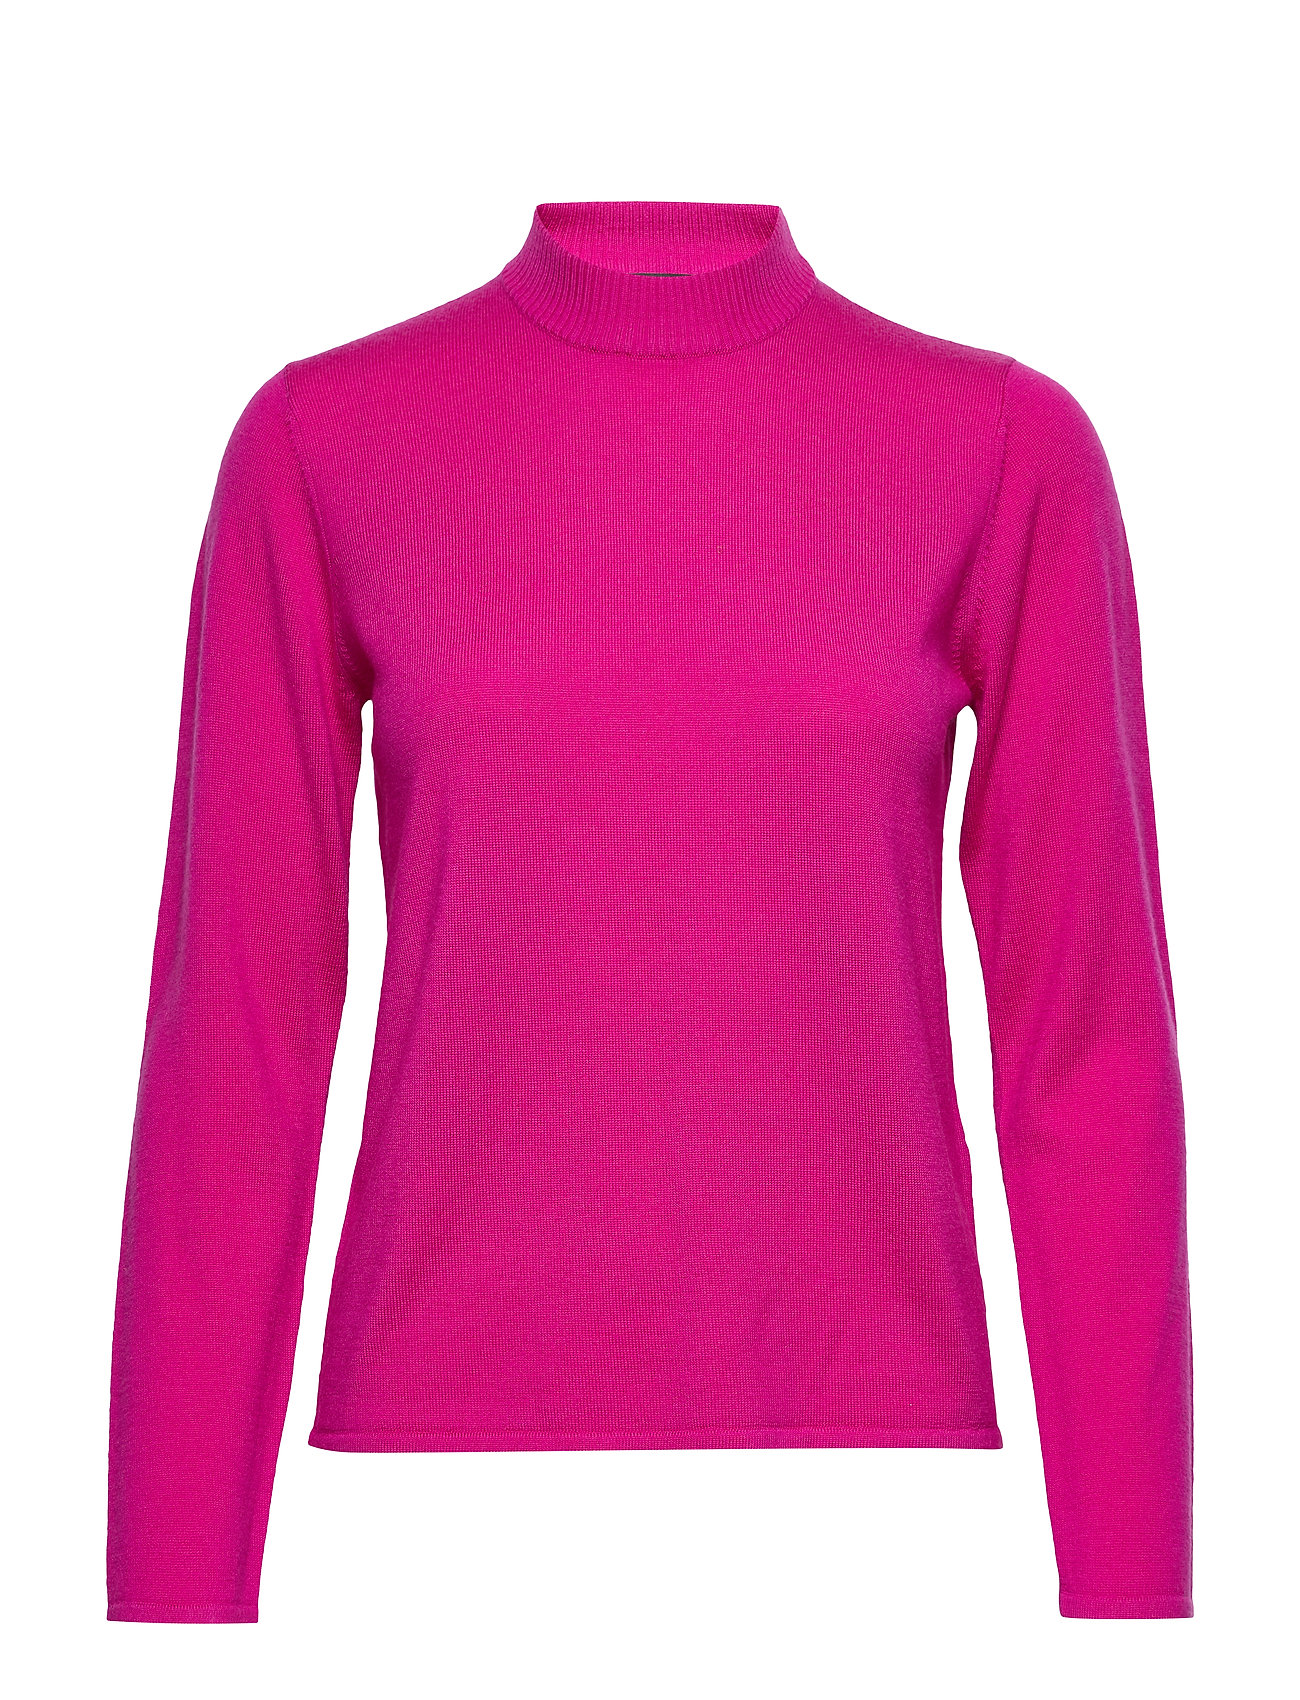 Marimekko MARMORI SOLID Knitted pullover - PINK